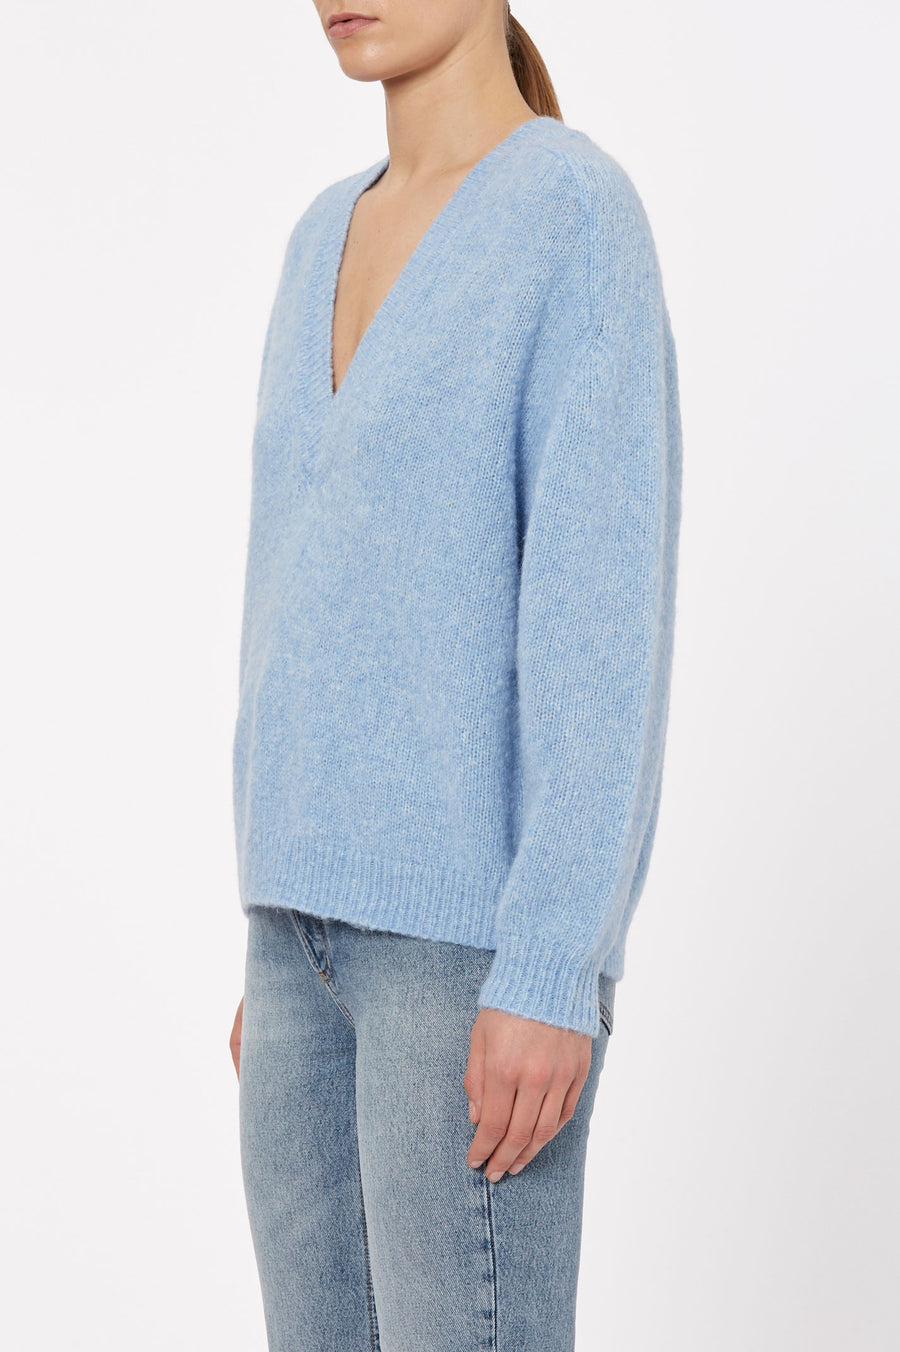 the Alpaca V Neck Sweater. Fabricated from a soft alpaca wool blend